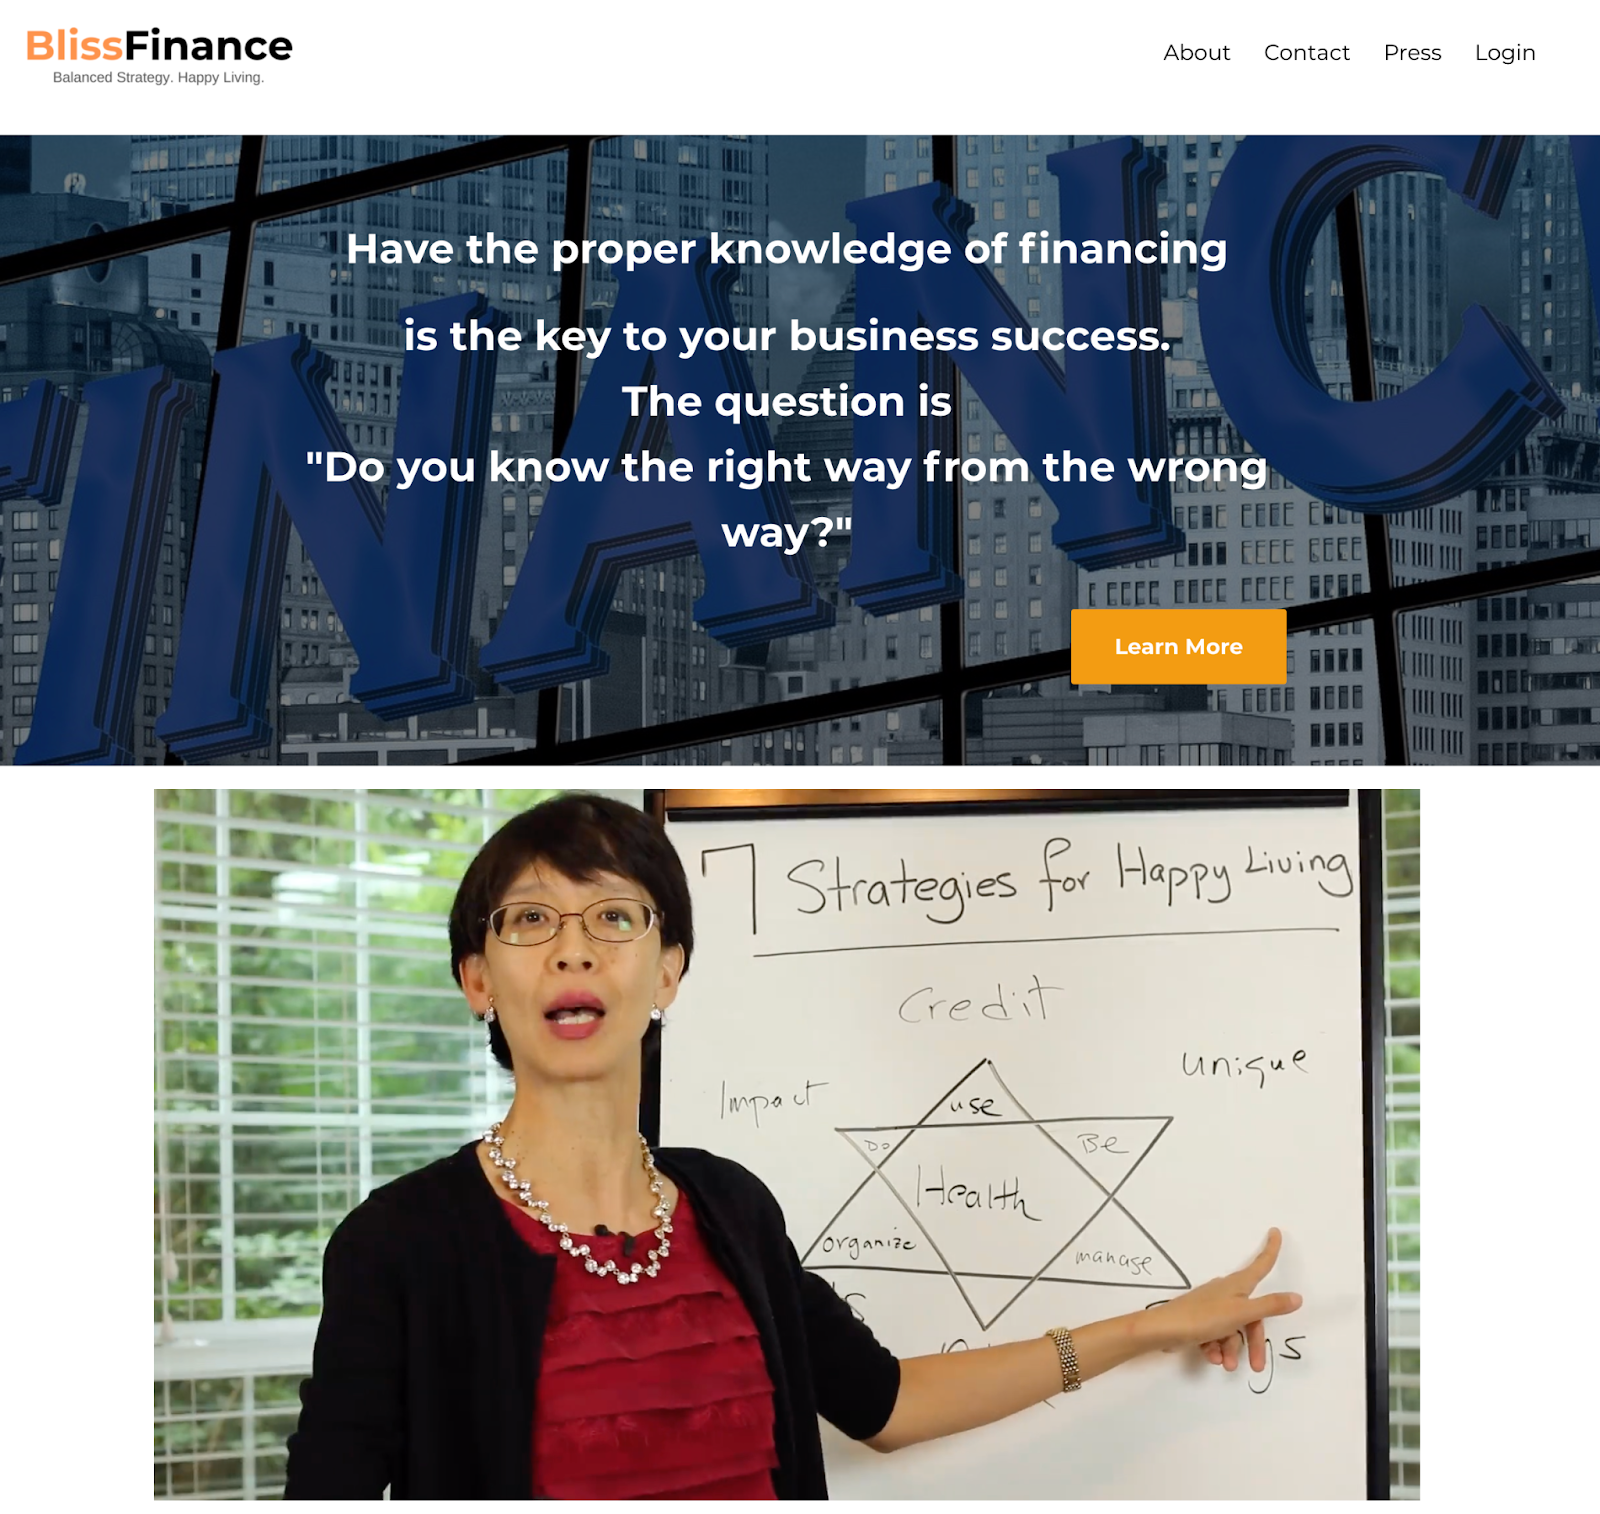 Screenshot of the Bliss Finance website with a statement about business financing and an image of a woman showcasing a diagram of 7 strategies for happy living